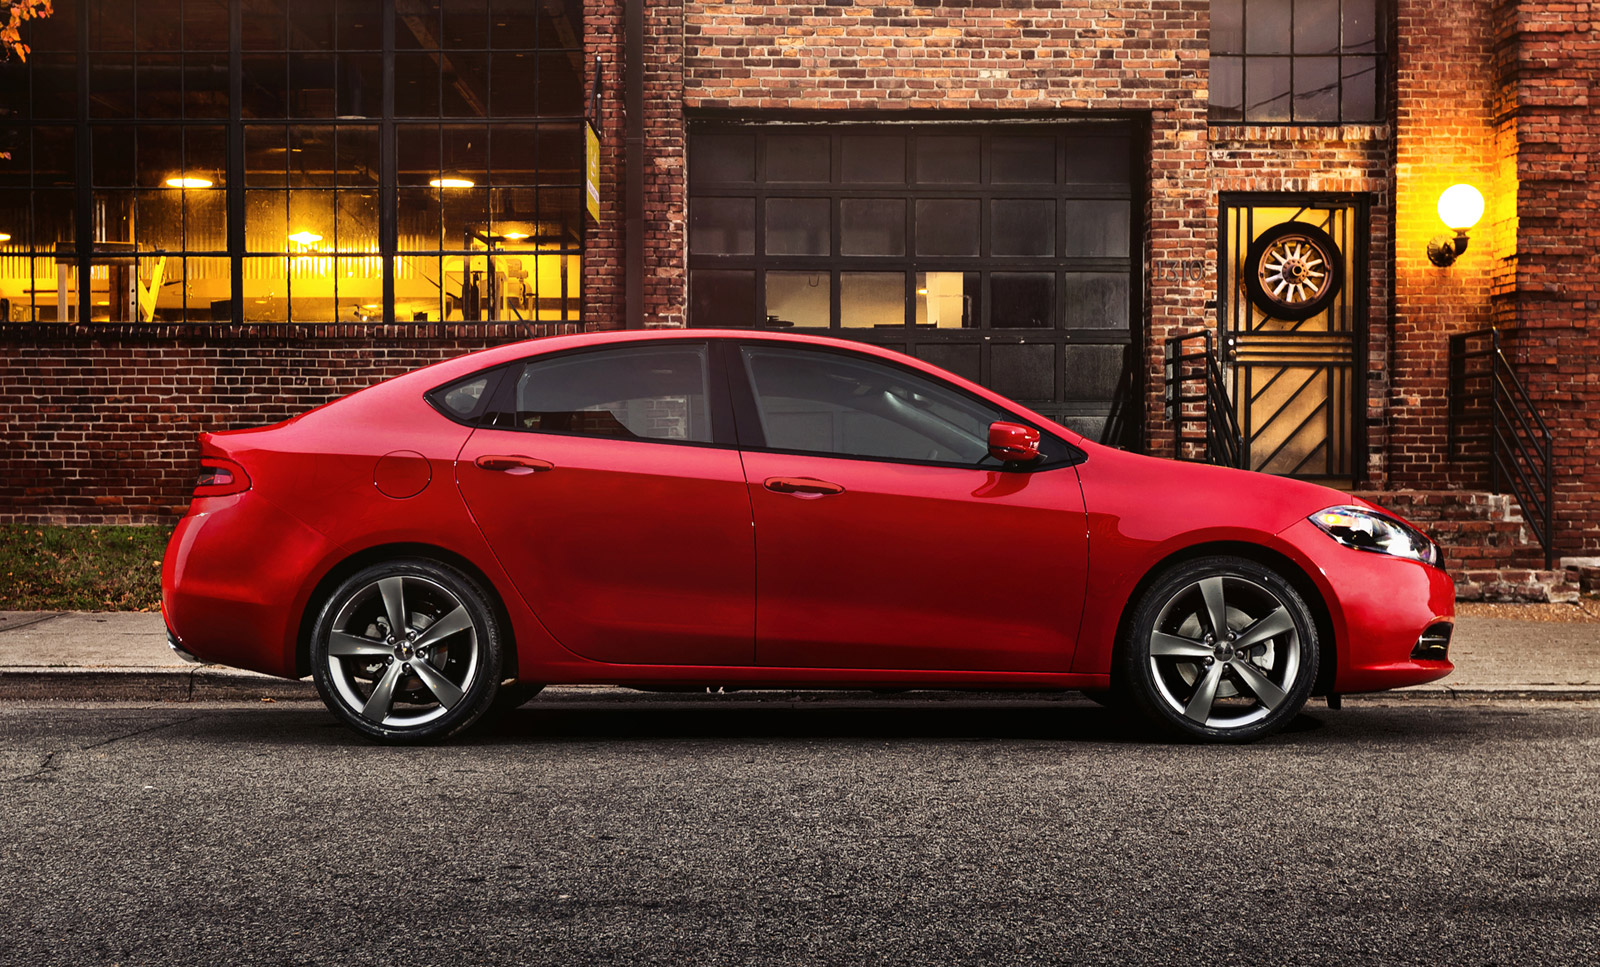 Why Isn't The Dodge Dart Selling?